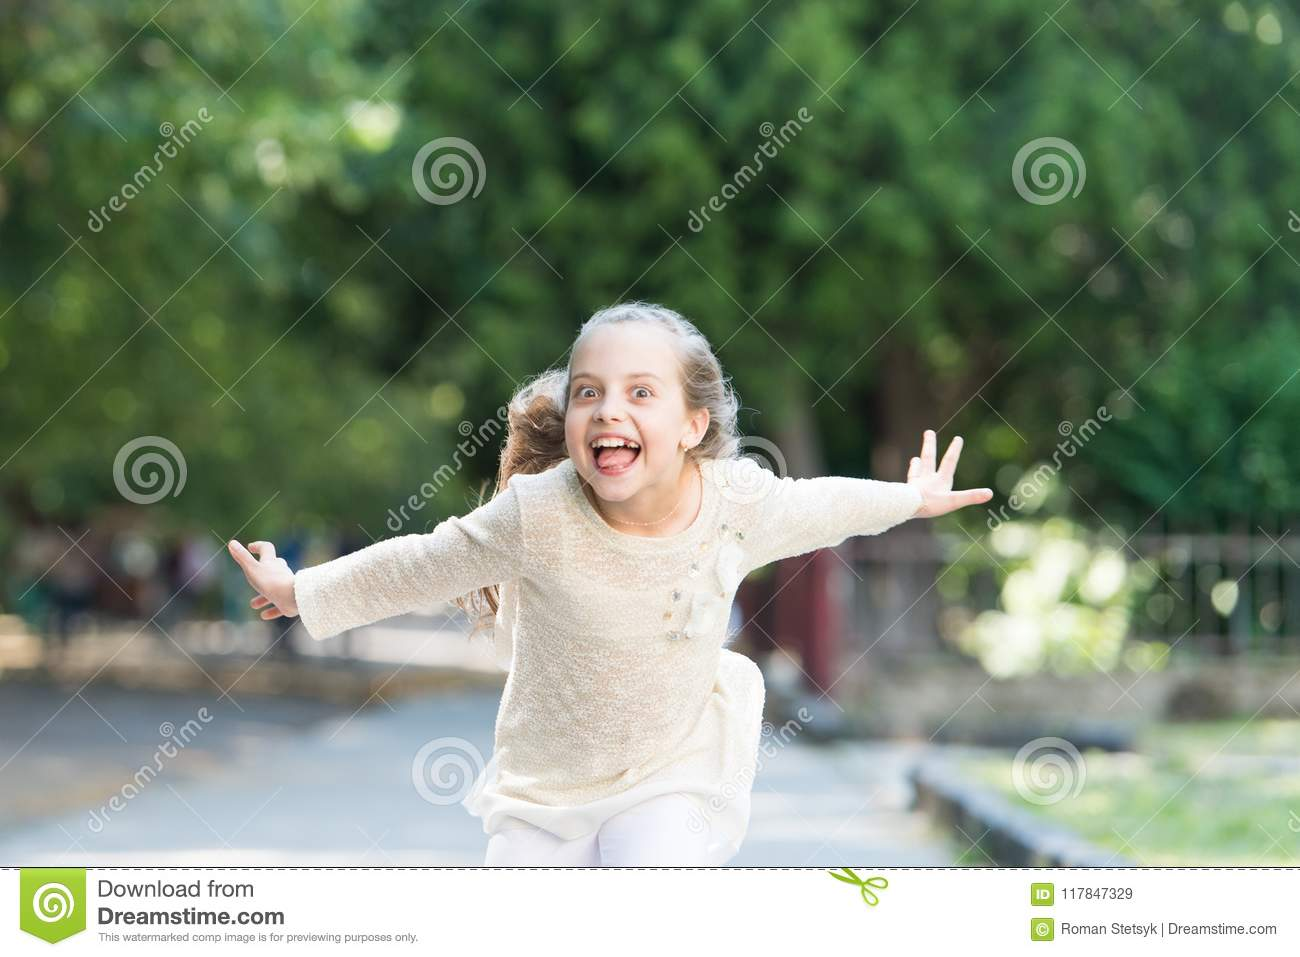 Girl on happy smiling face, nature on background. Child happy and cheerful enjoy walk in park. Happiness concept. Kid